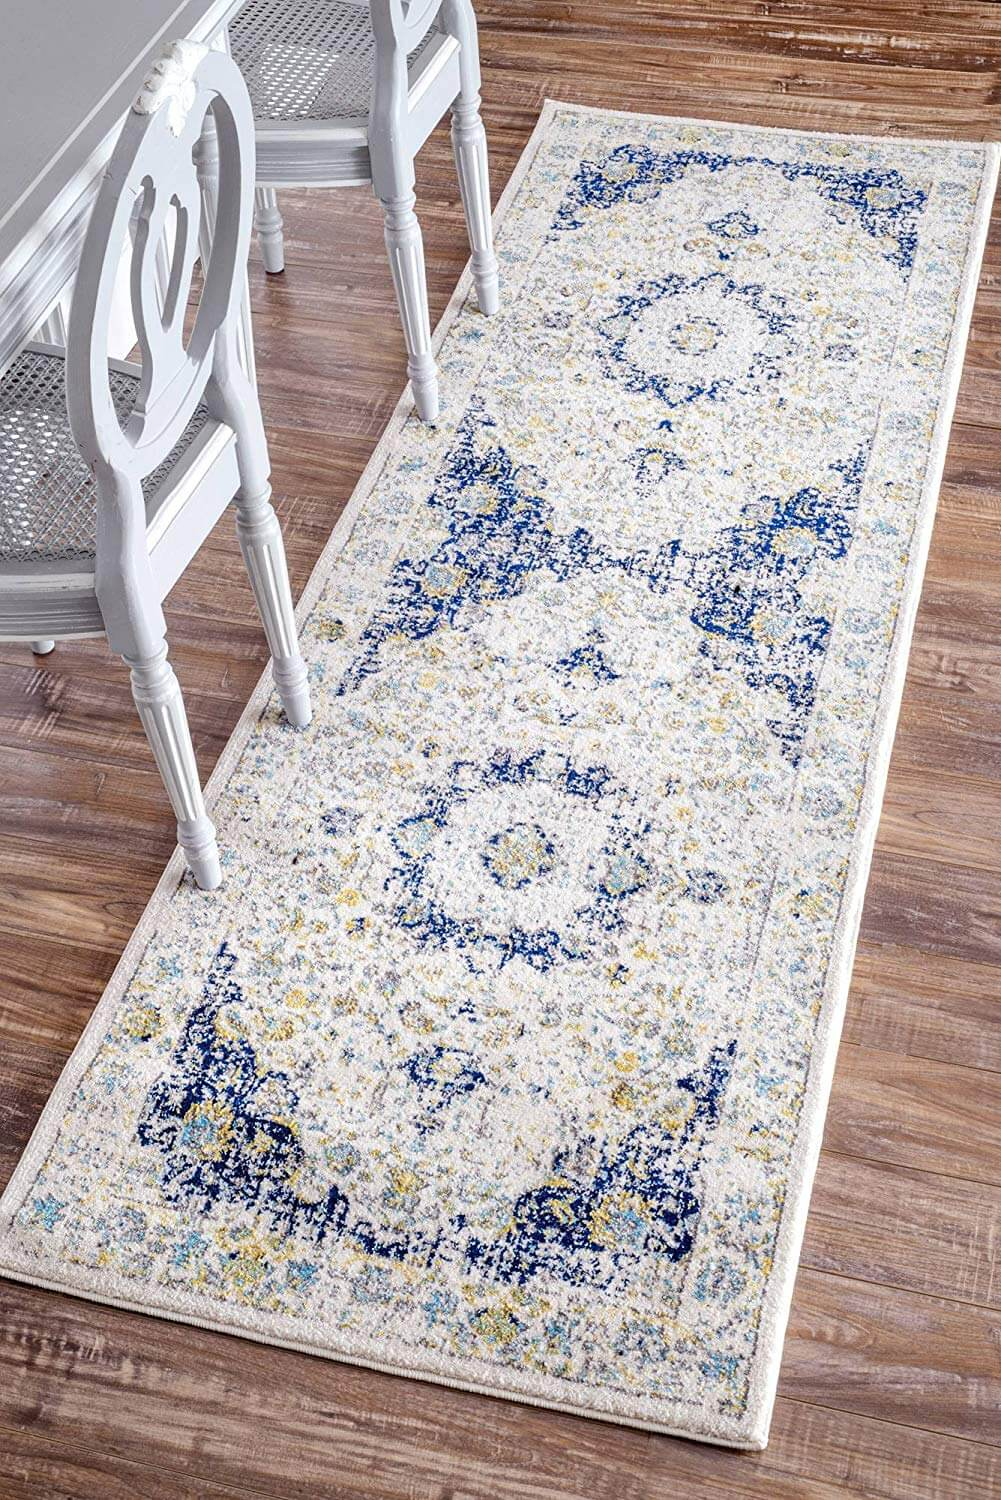 Distressed Persian-Style Blue and White Rug